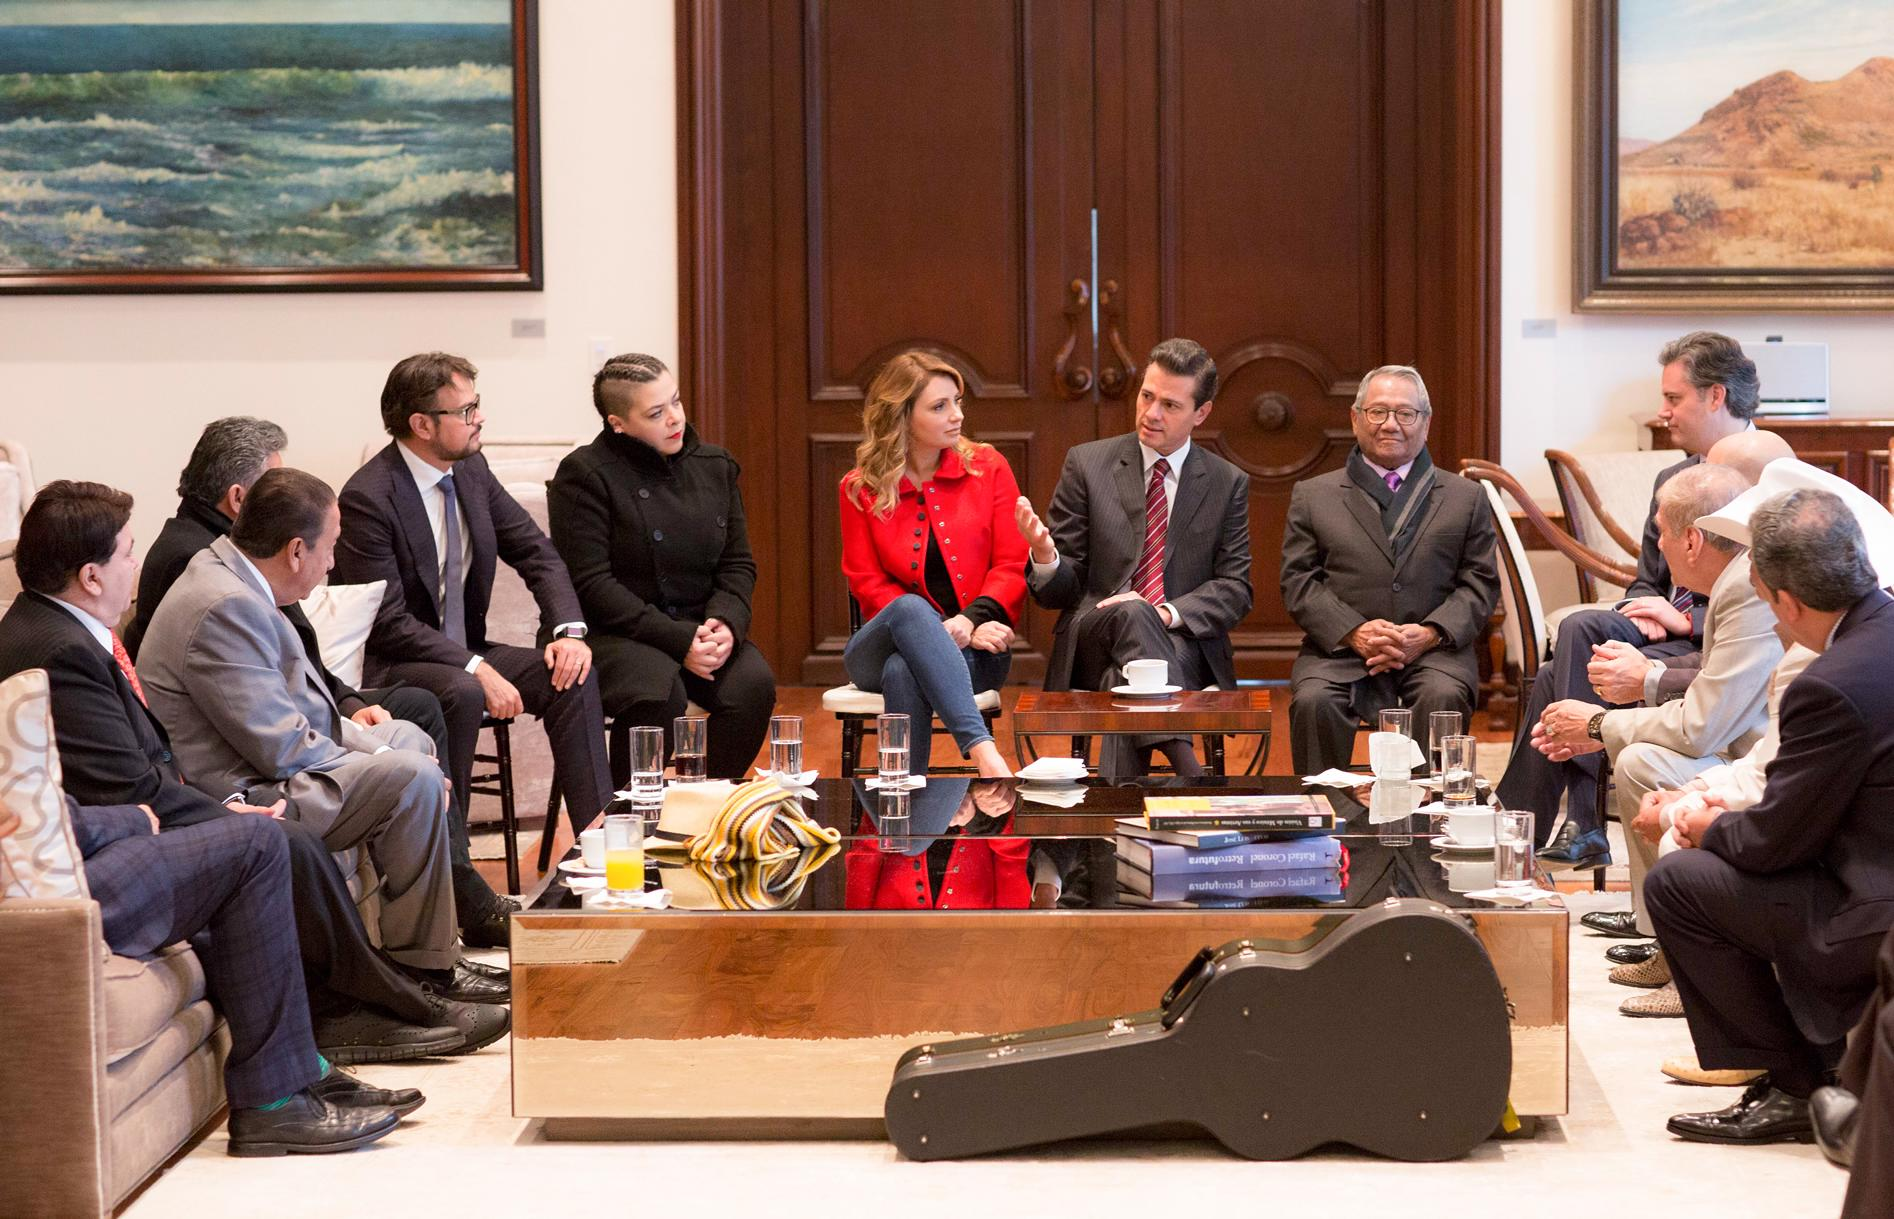 The president meets with members of the Mexican Society of Authors and Composers.